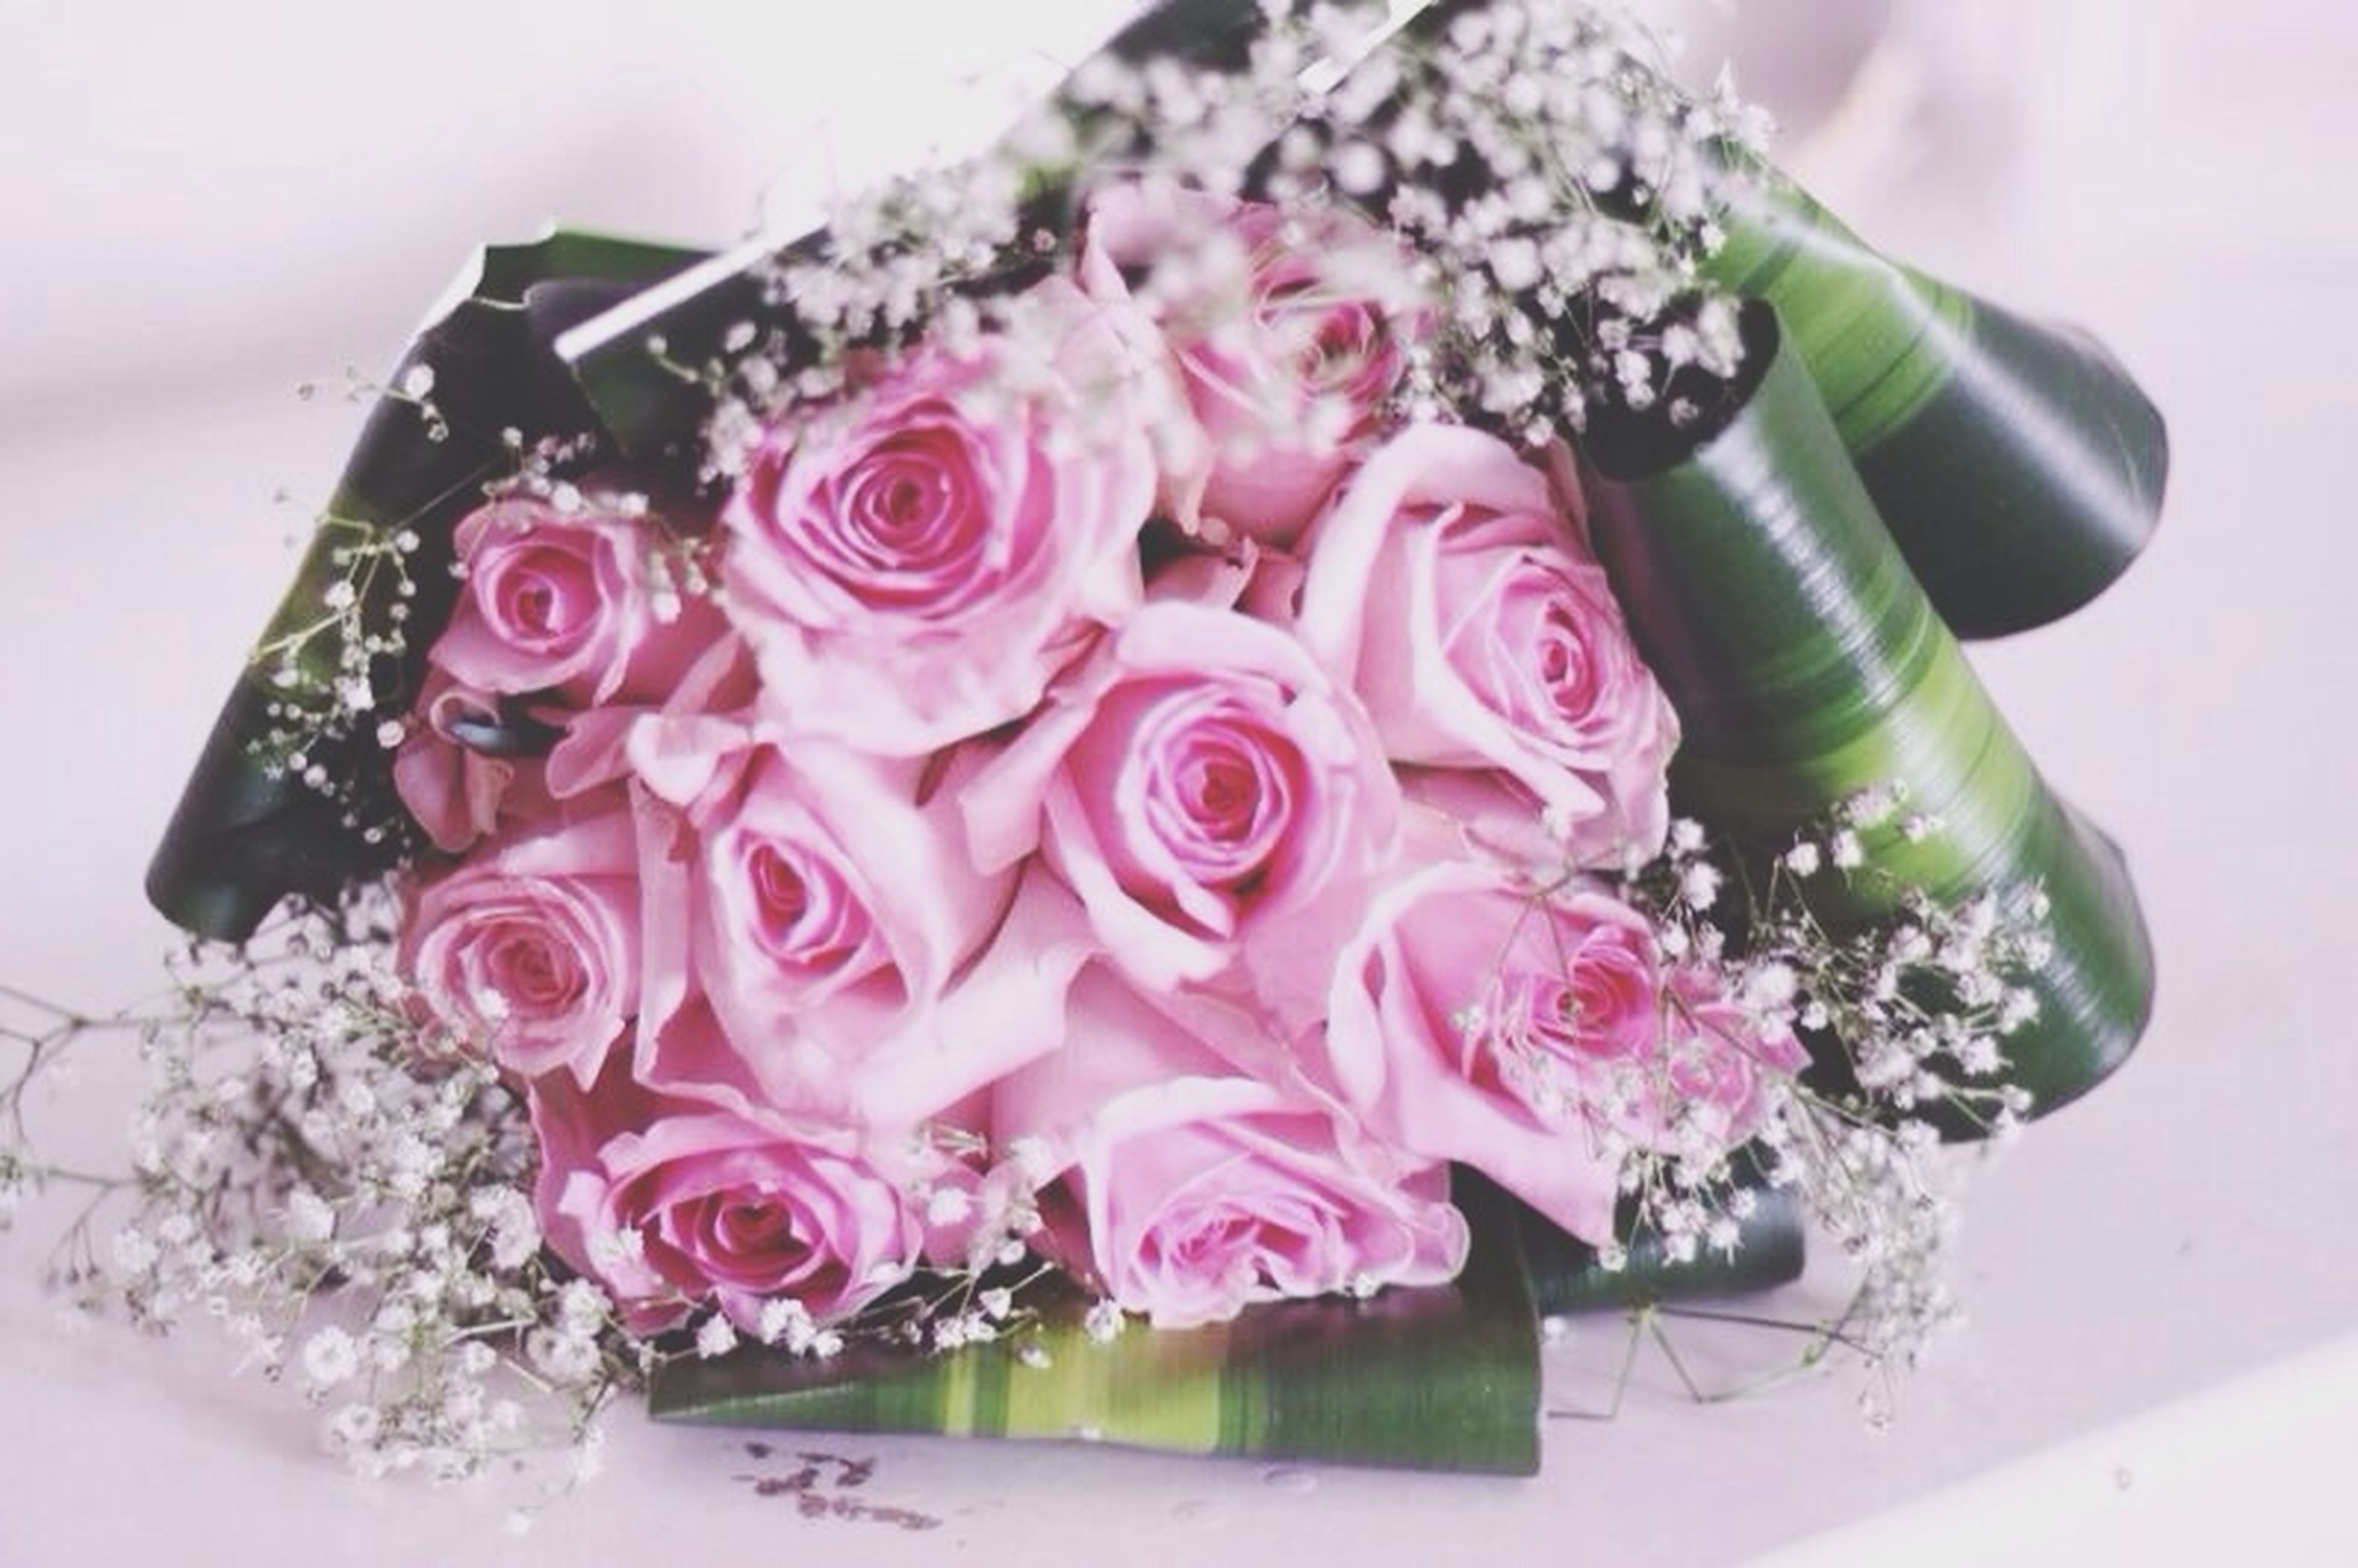 indoors, flower, freshness, close-up, still life, table, rose - flower, pink color, focus on foreground, fragility, petal, no people, decoration, bunch of flowers, vase, beauty in nature, selective focus, high angle view, flower head, nature